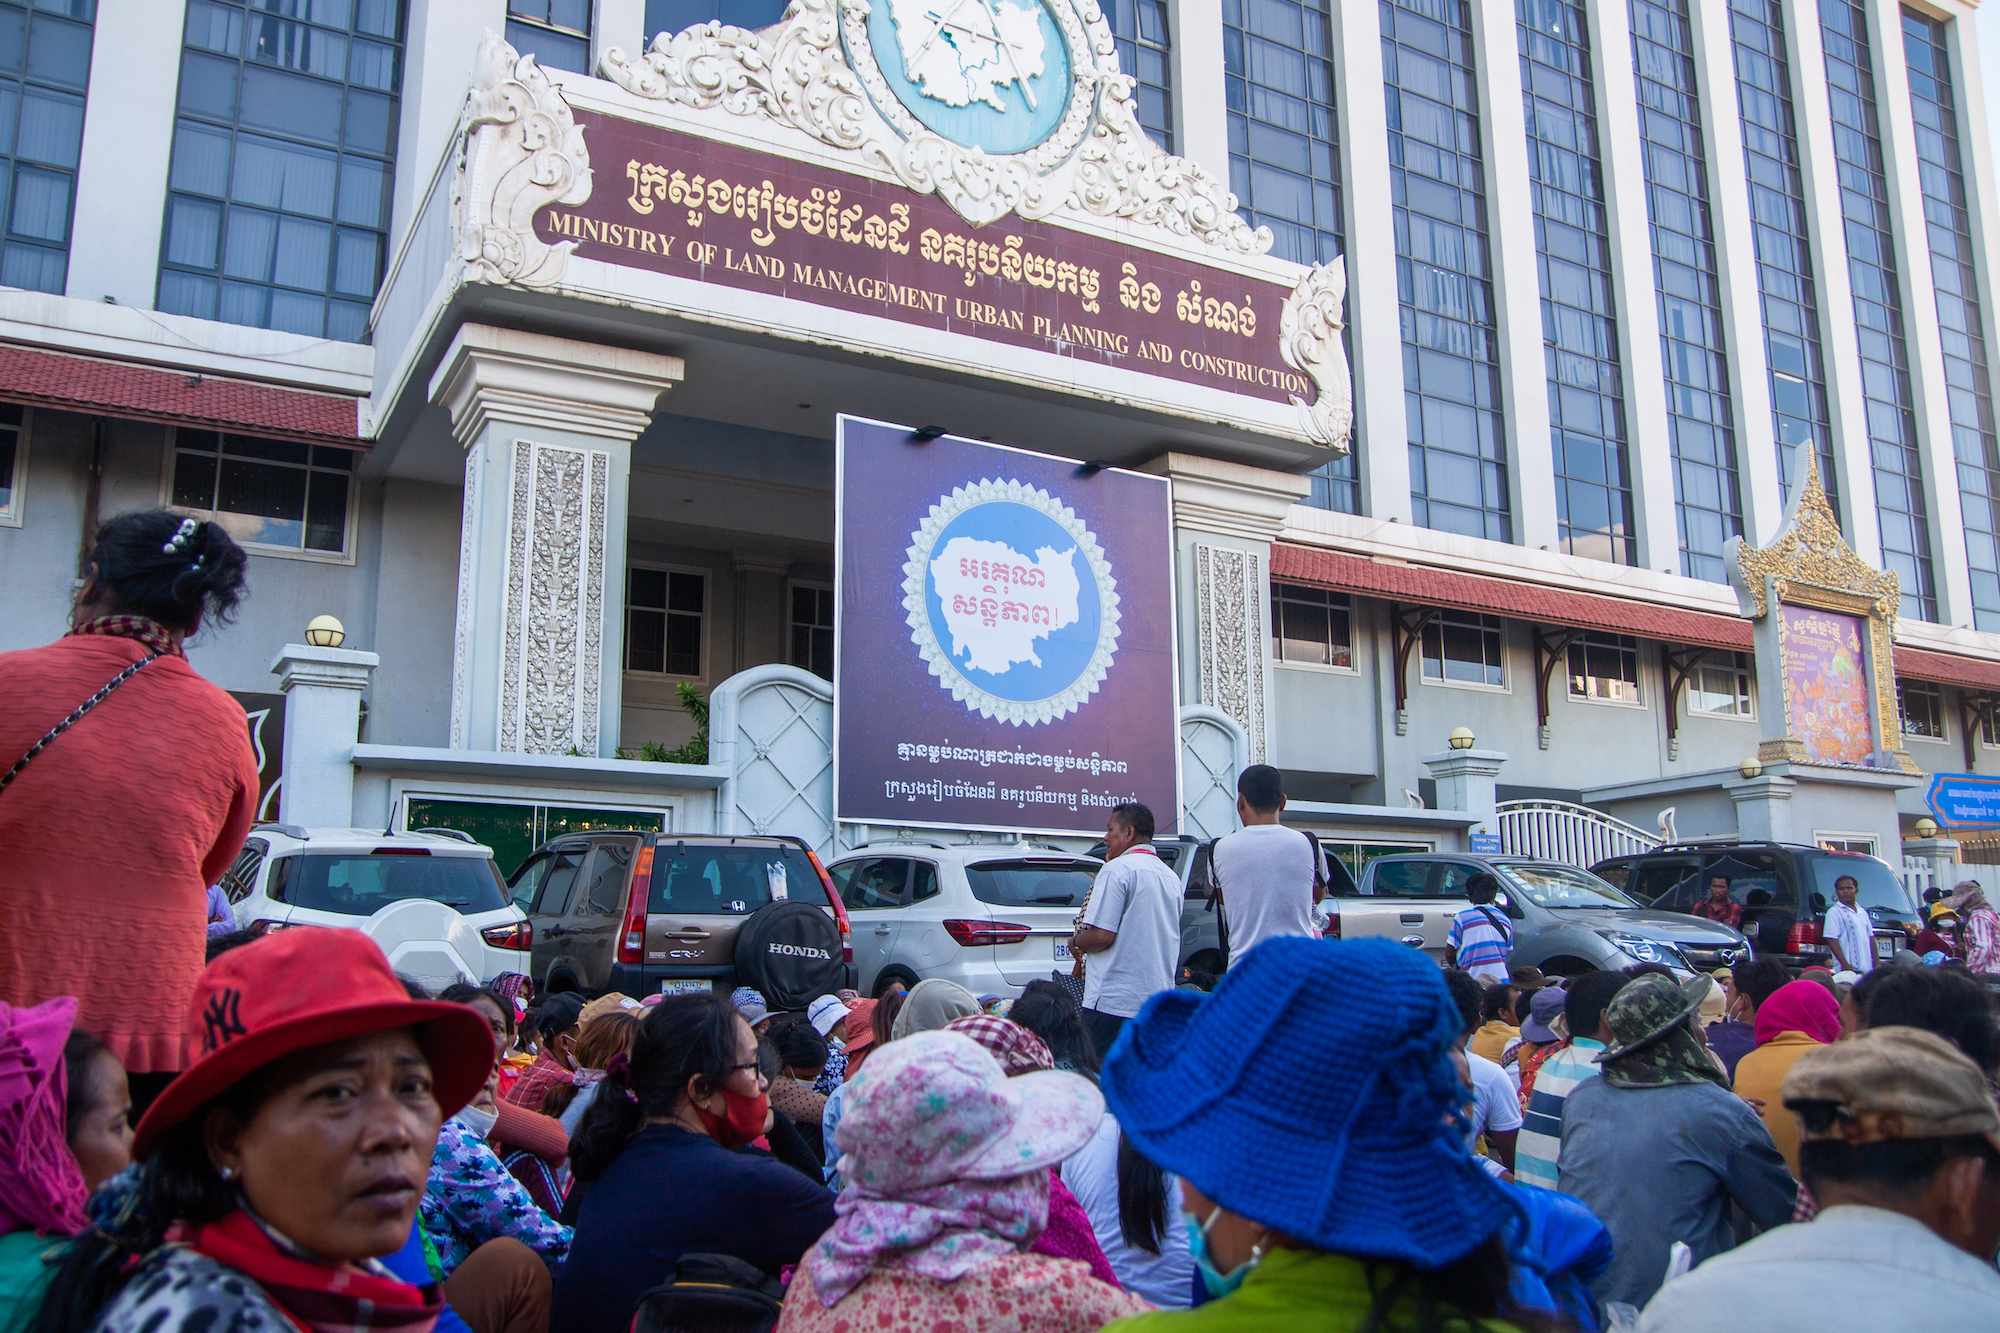 A protest against land-grabbing held in front of the Land Management Ministry in September, 2020. Image by Gerald Flynn.